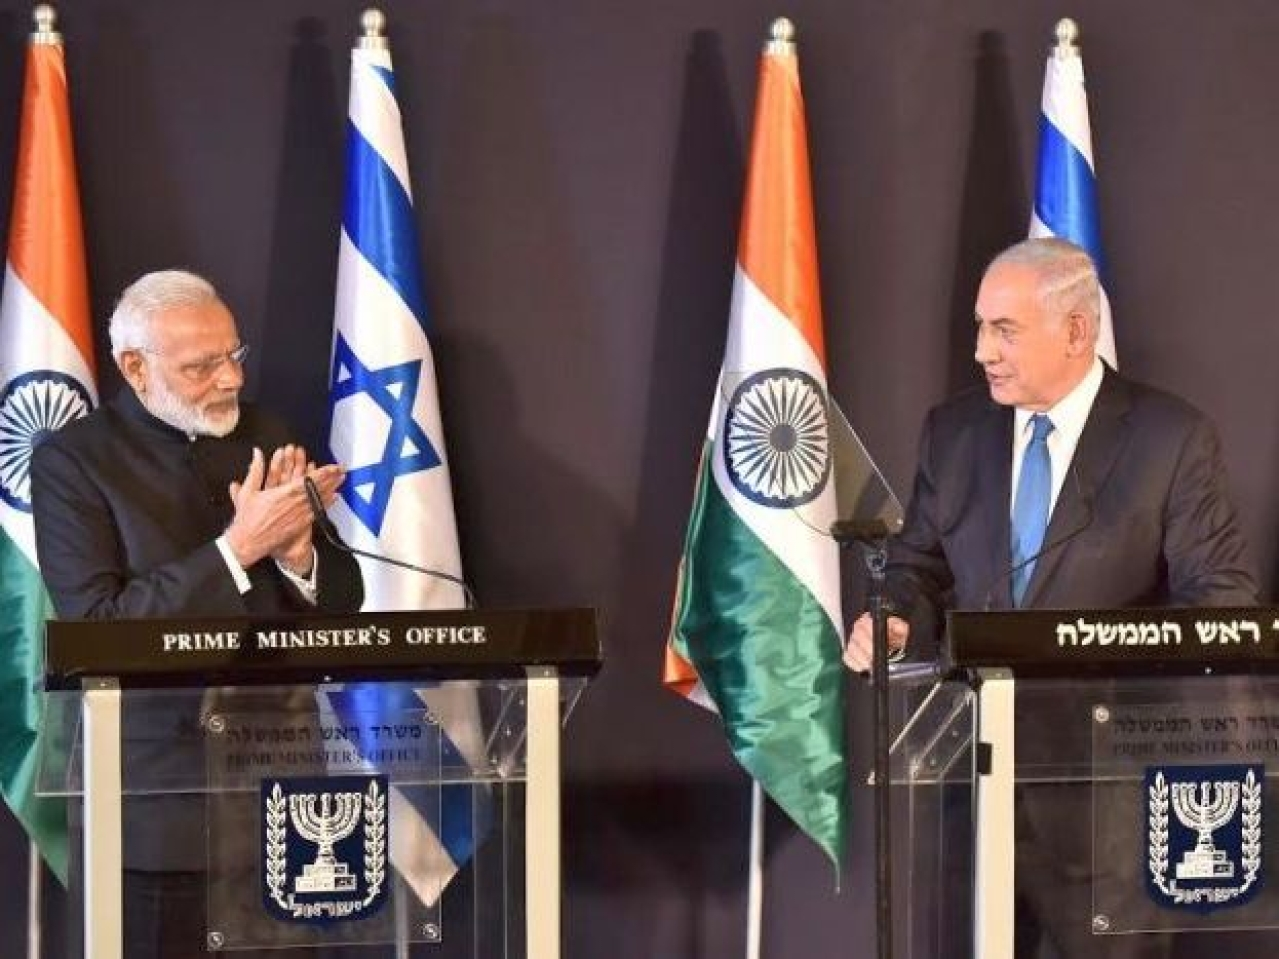 Israeli PM Netanyahu Presses on Construction Sector to Boost Indo-Israeli Ties